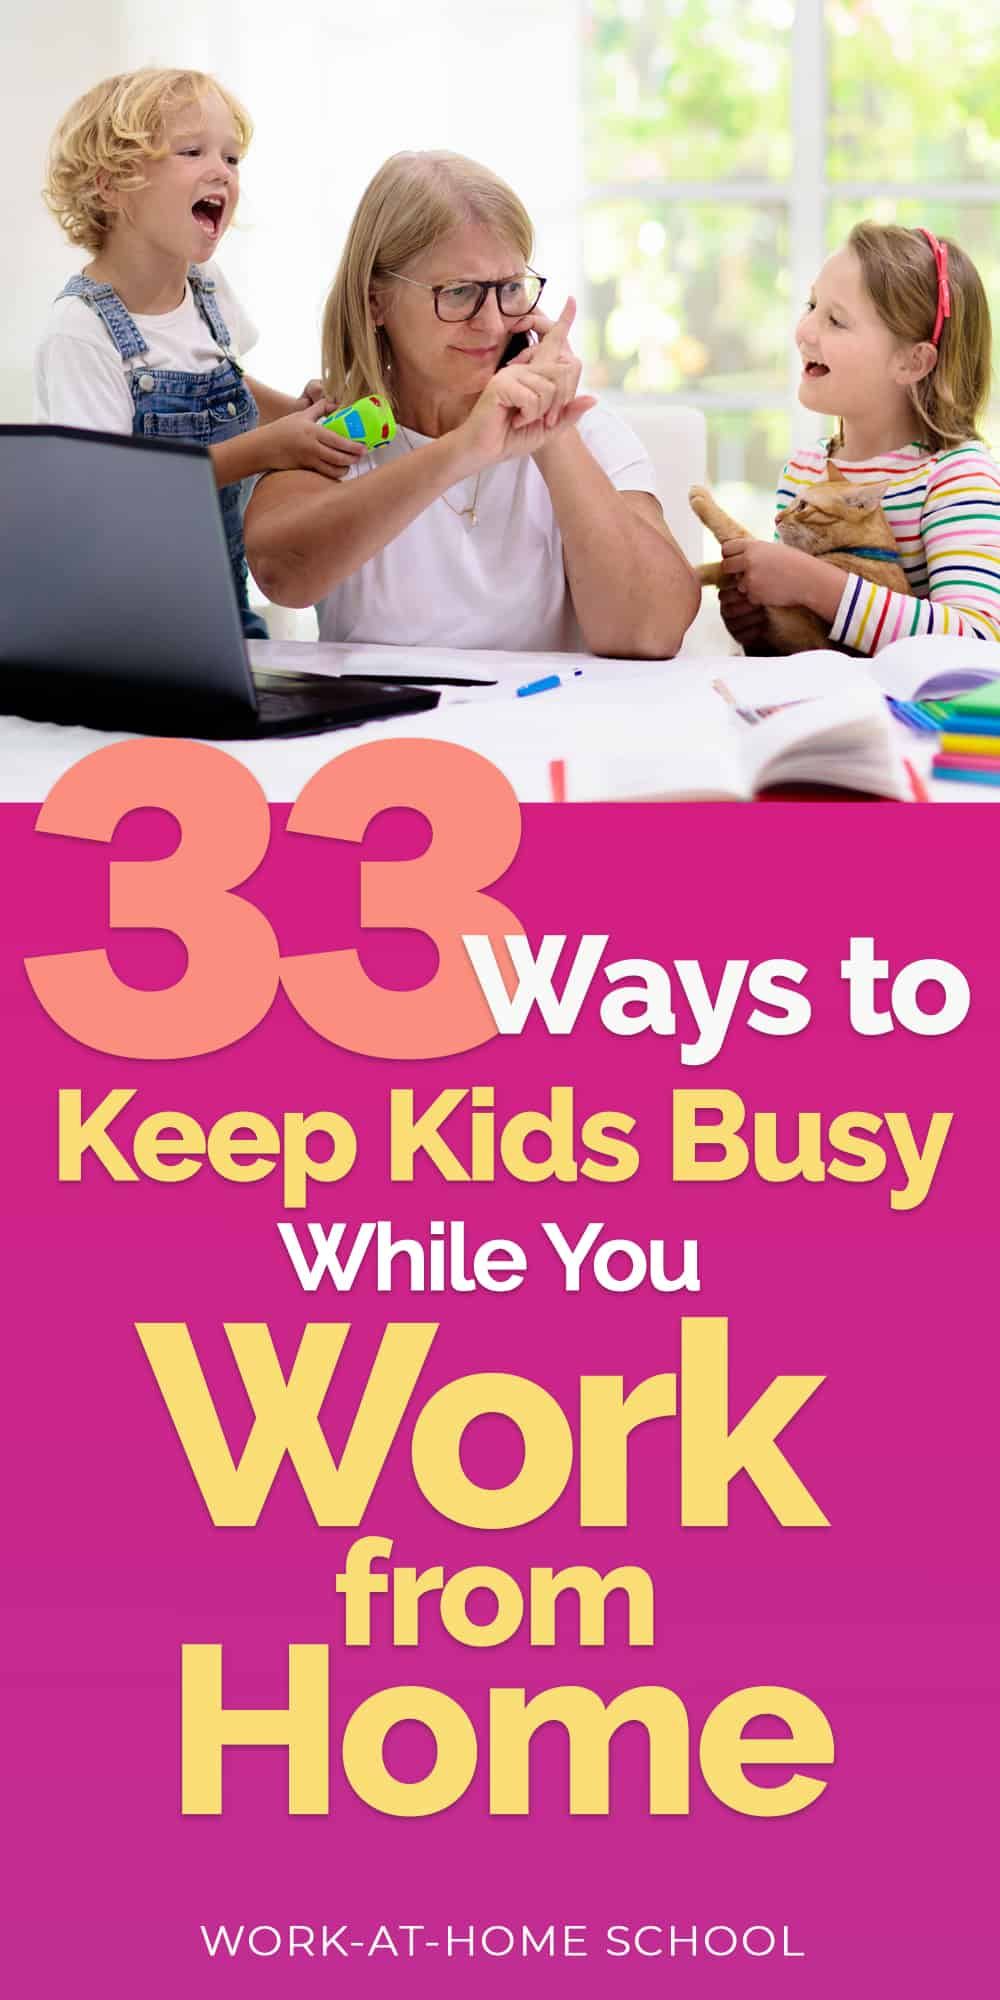 Keep kids busy with these 33 resources for kids stuck at home